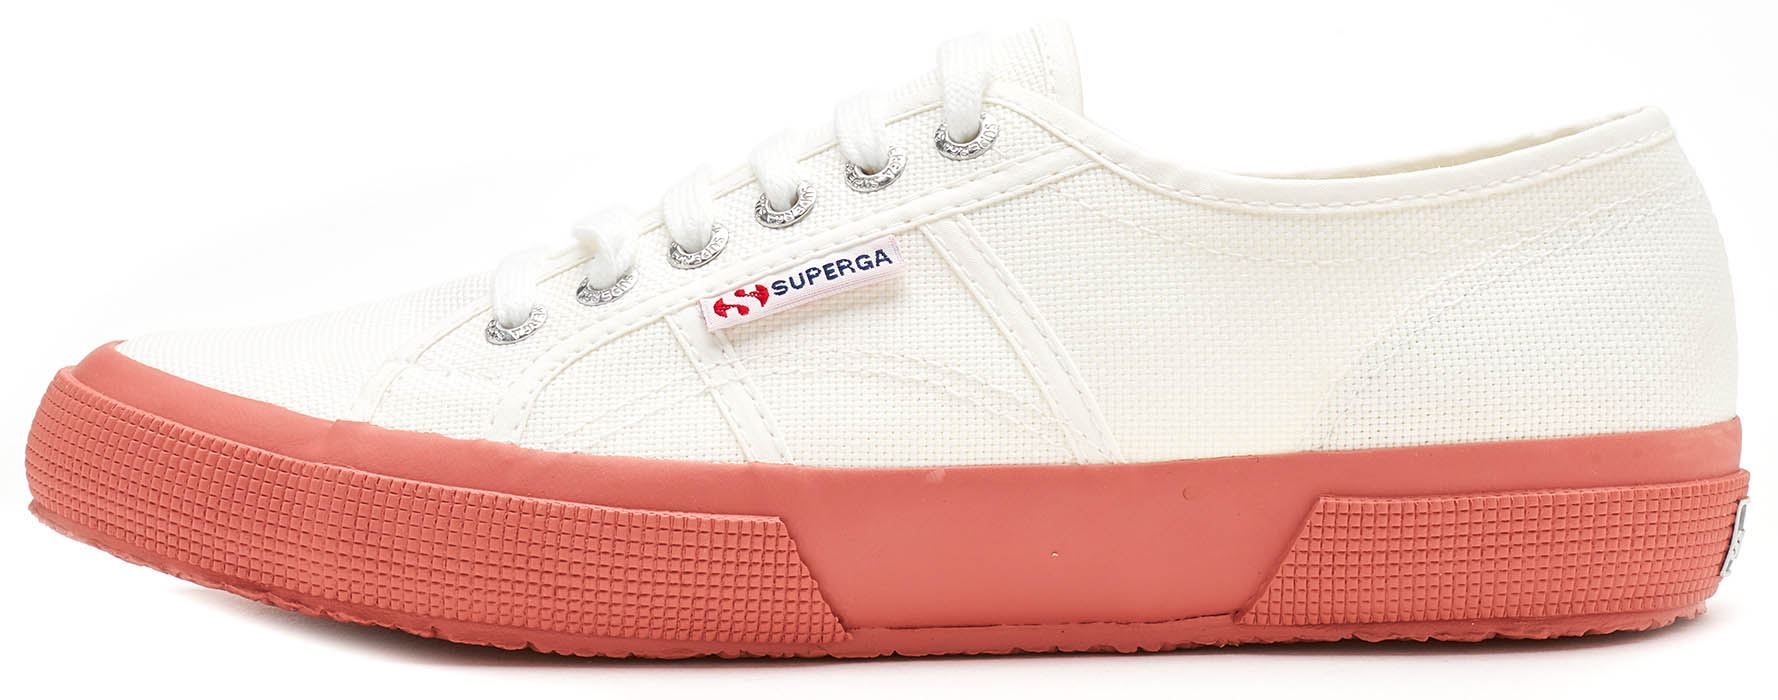 BRAND NEW WITH TAGS Superga 2750 plus Cotu Size EU Depop